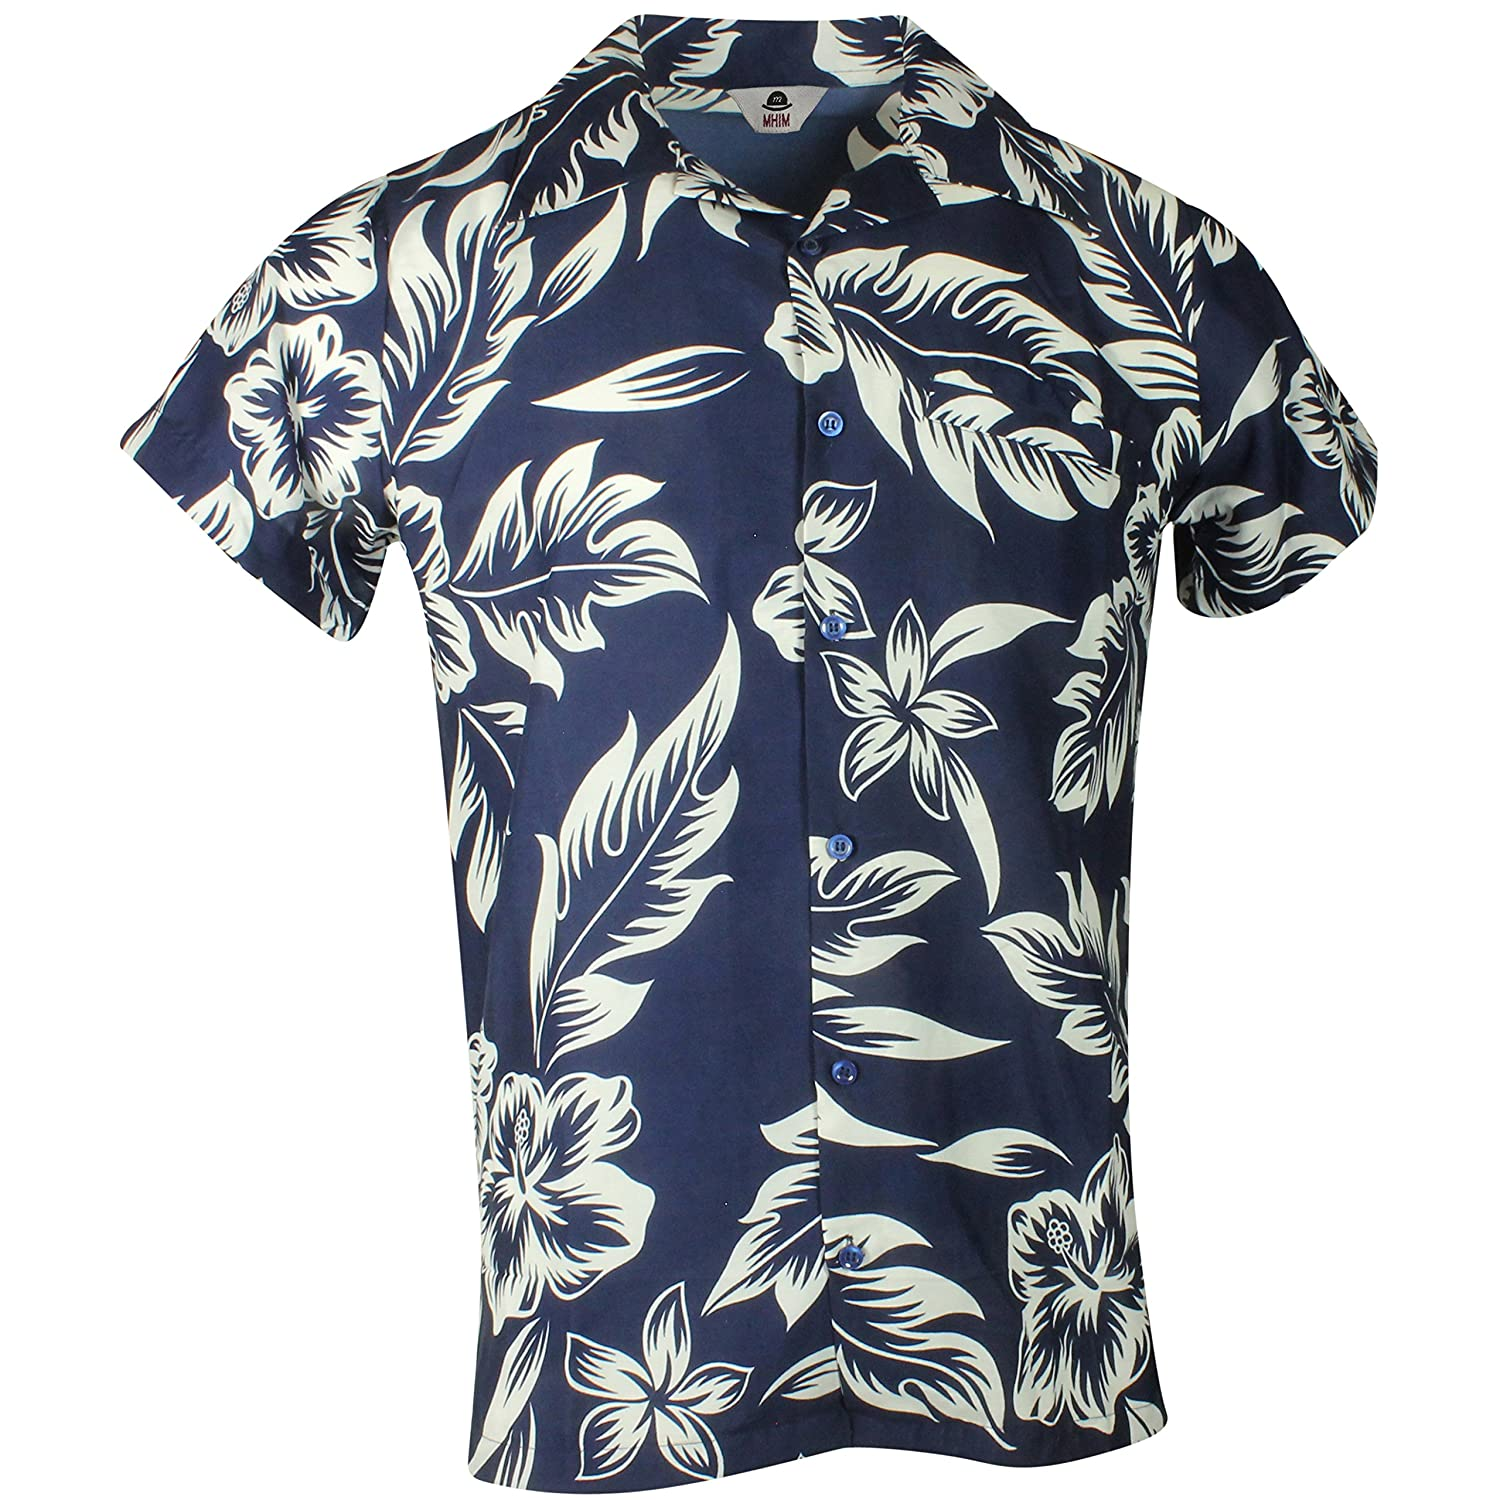 79b3c9724ce Floral Hawaiian Shirt Flower and Leaf Navy: Amazon.co.uk: Clothing